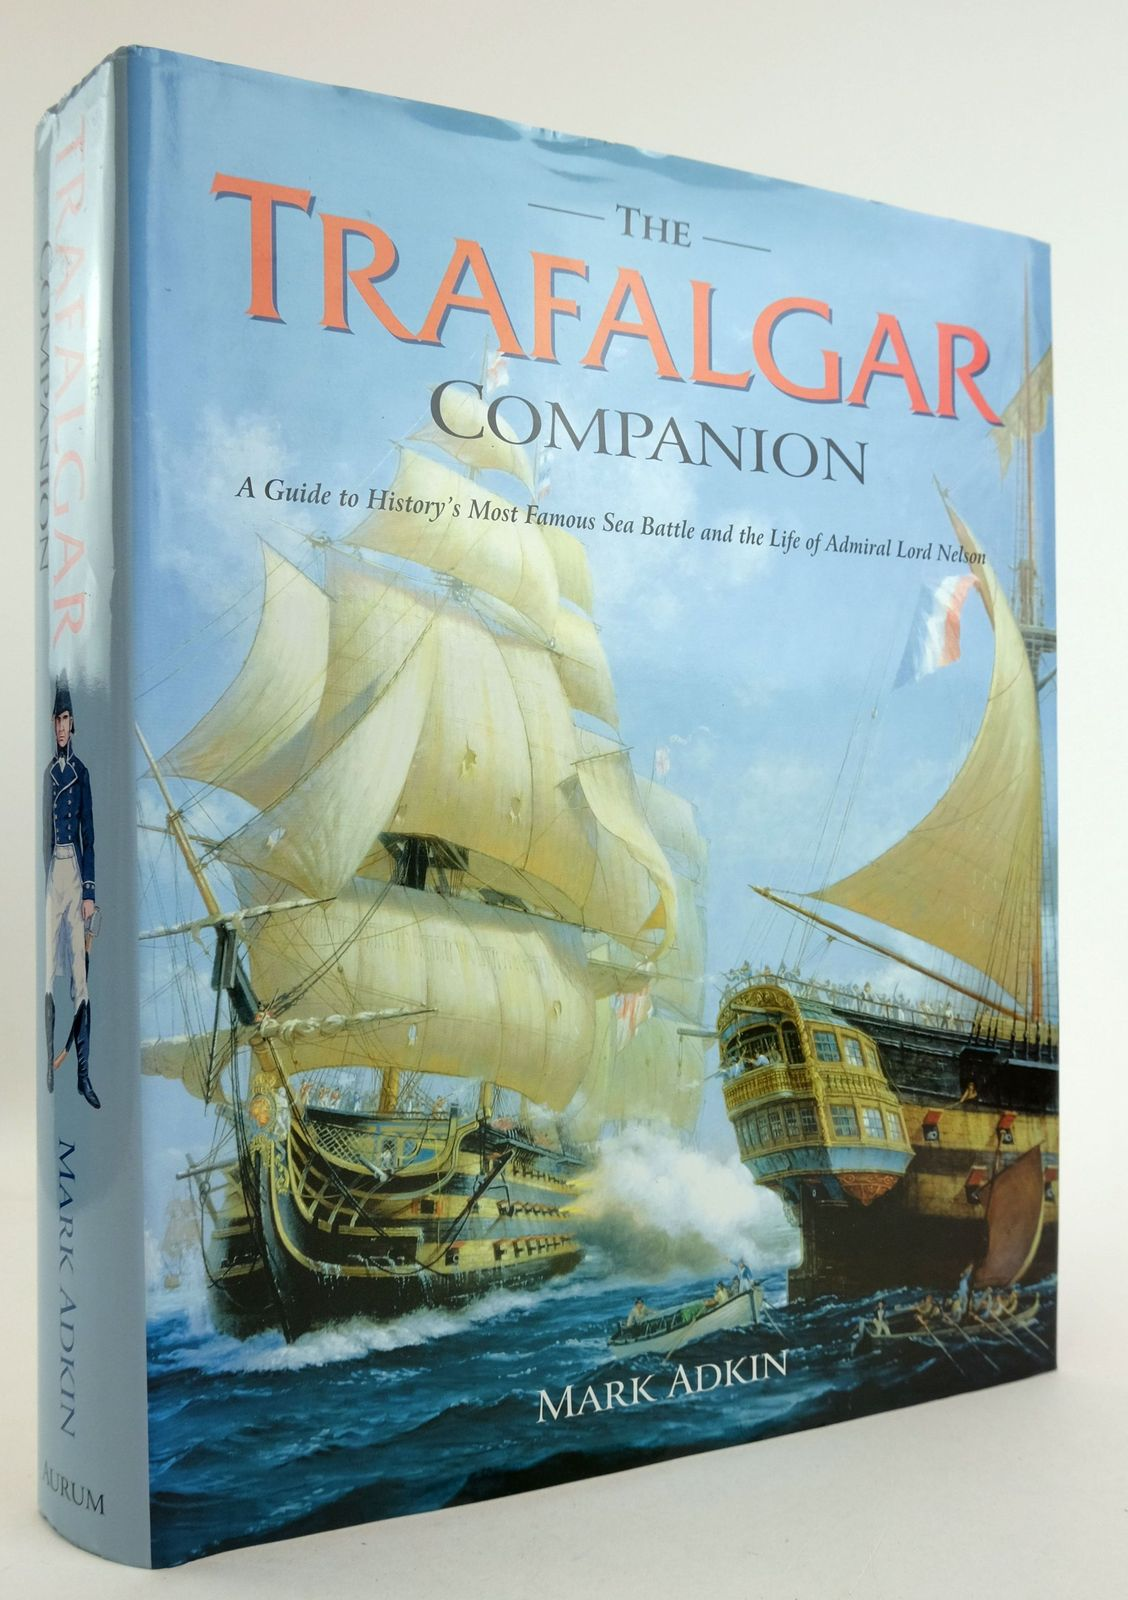 Photo of THE TRAFALGAR COMPANION written by Adkin, Mark illustrated by Farmer, Clive published by Aurum Press (STOCK CODE: 1819496)  for sale by Stella & Rose's Books